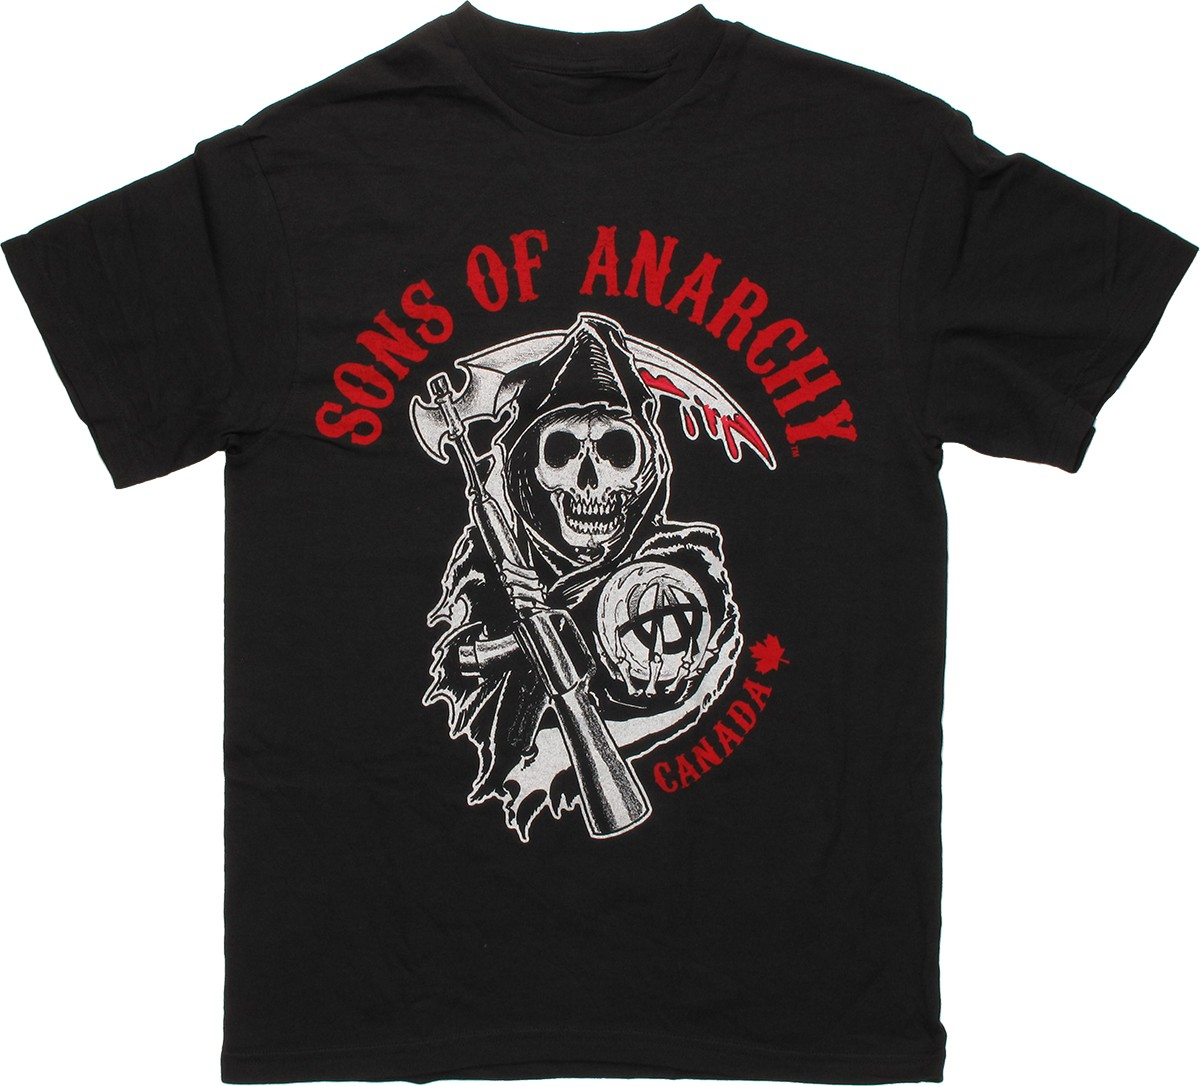 sons of anarchy reaper canada t shirt. Black Bedroom Furniture Sets. Home Design Ideas